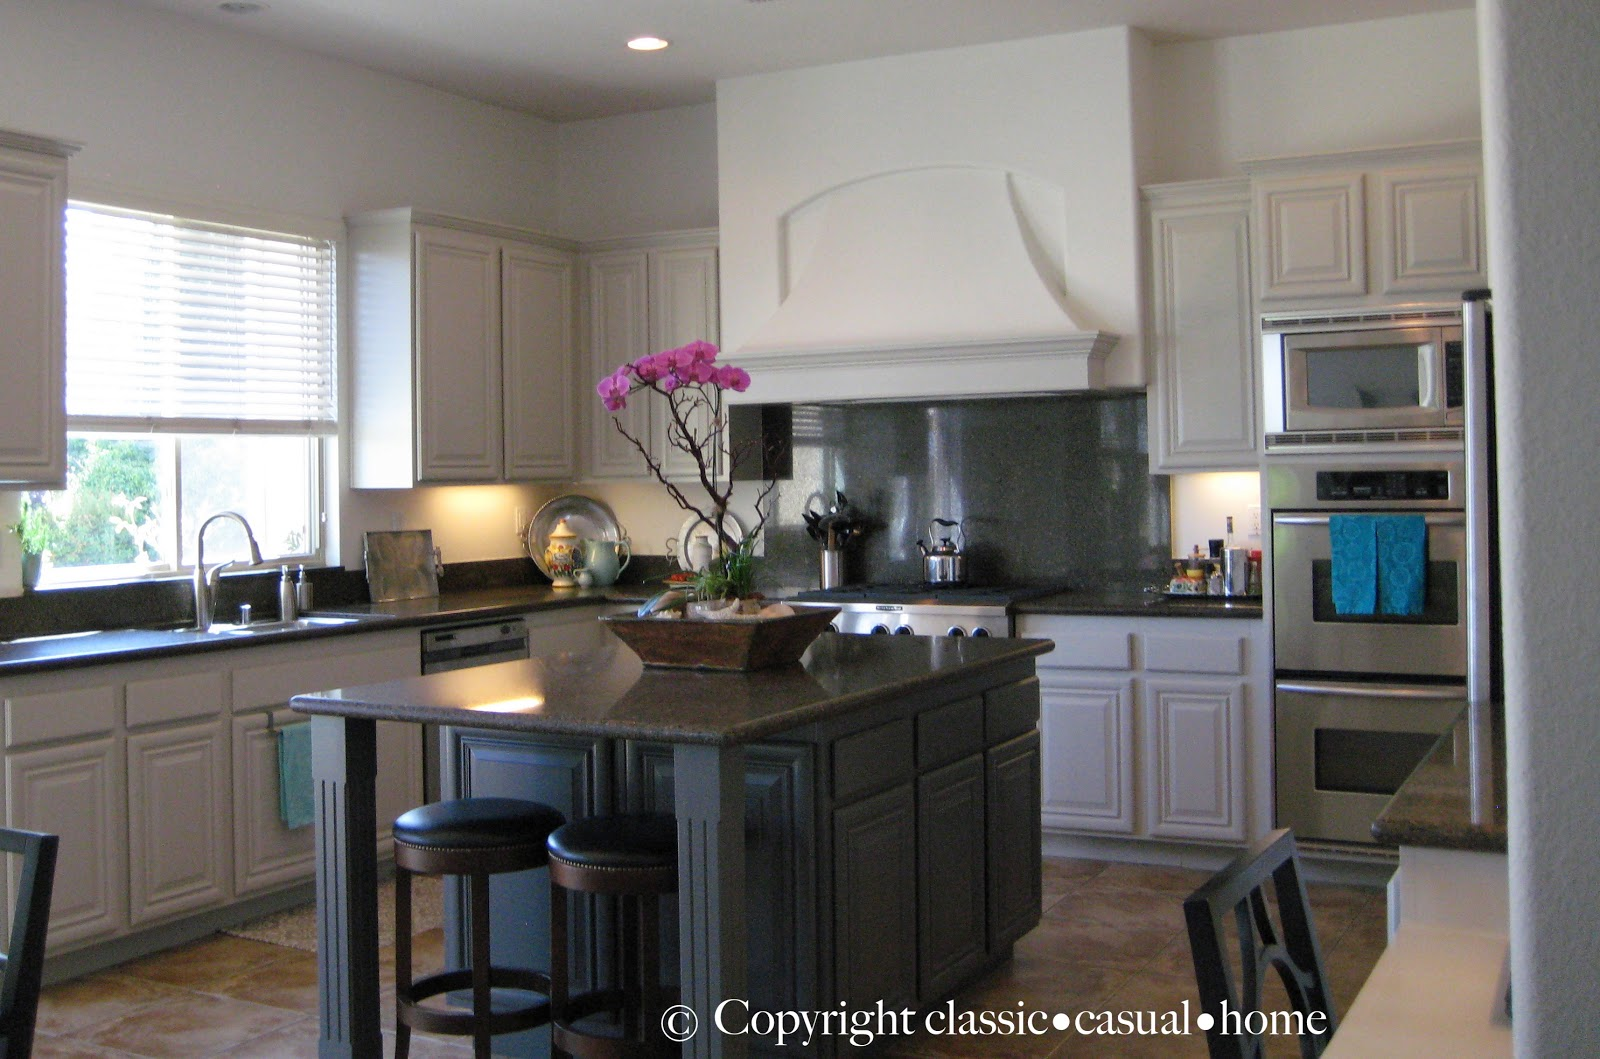 classic casual home painted kitchen cabinets before and after. Black Bedroom Furniture Sets. Home Design Ideas